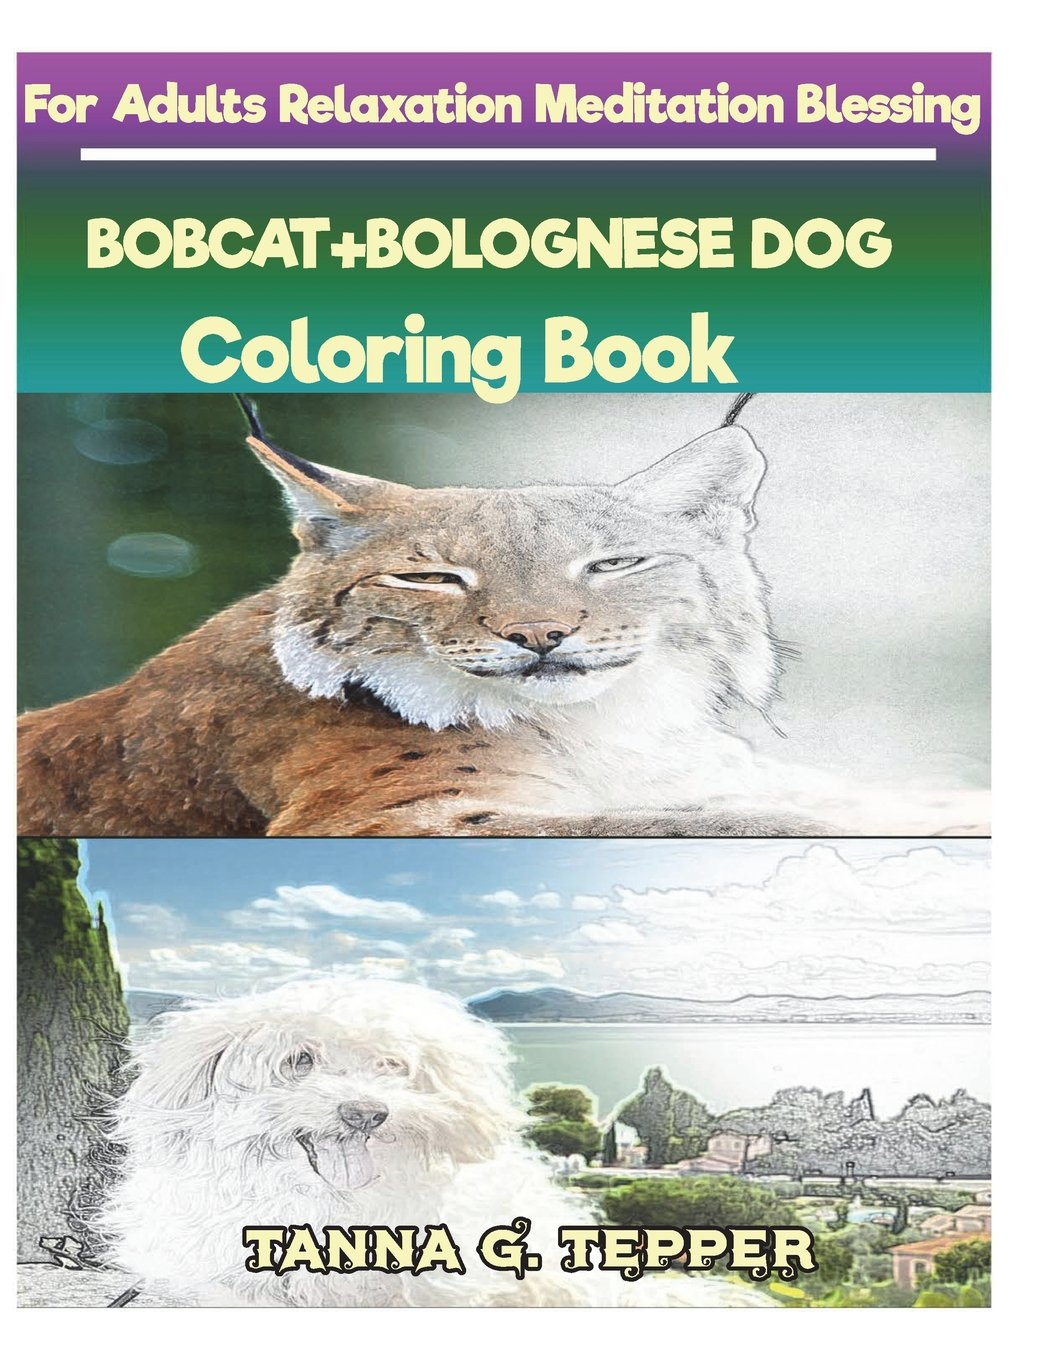 Download BOBCAT+BOLOGNESE DOG Coloring book for Adults Relaxation Meditation Blessing: Sketch coloring book Grayscale Pictures PDF